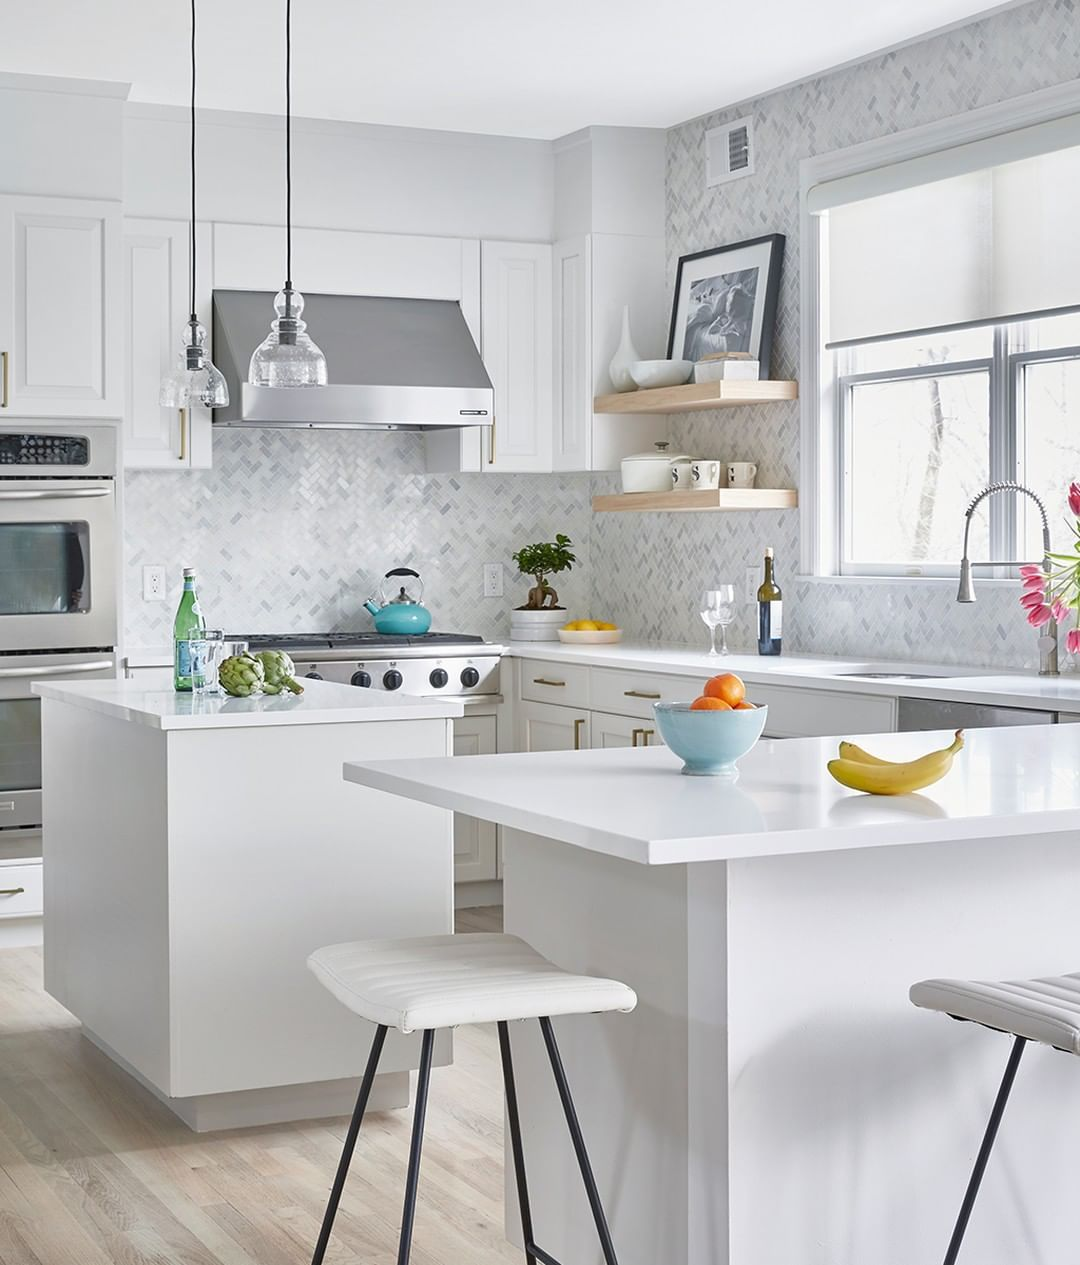 Caesarstone Us On Instagram A Kitchen This Clean And Pristine Requires Countertops To Match Designer Chasemackennainteri Kitchen Stools Countertops Kitchen